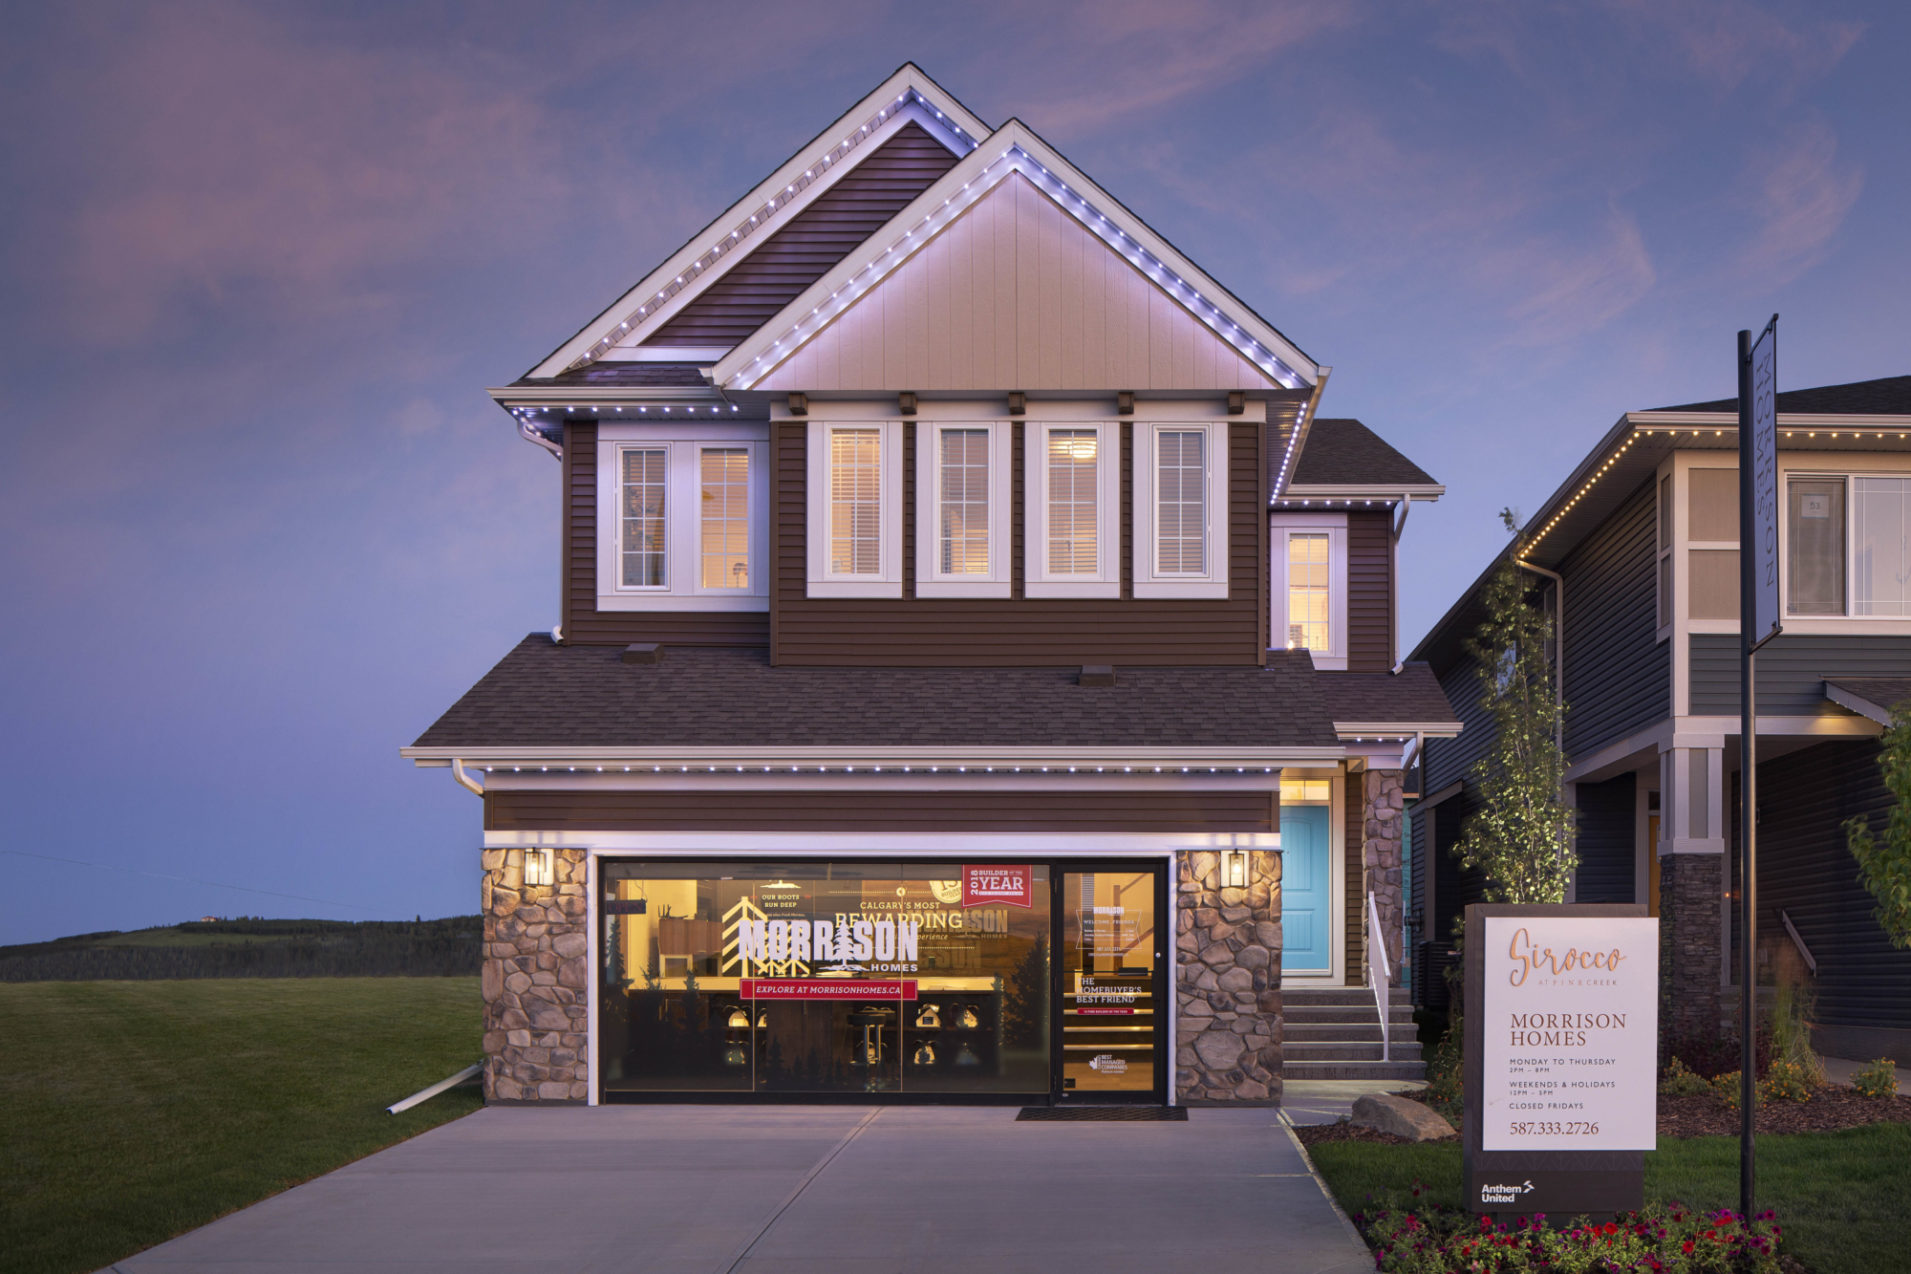 7 Morrisonhomes Belmont Blakely Showhome Salescentre2 2018